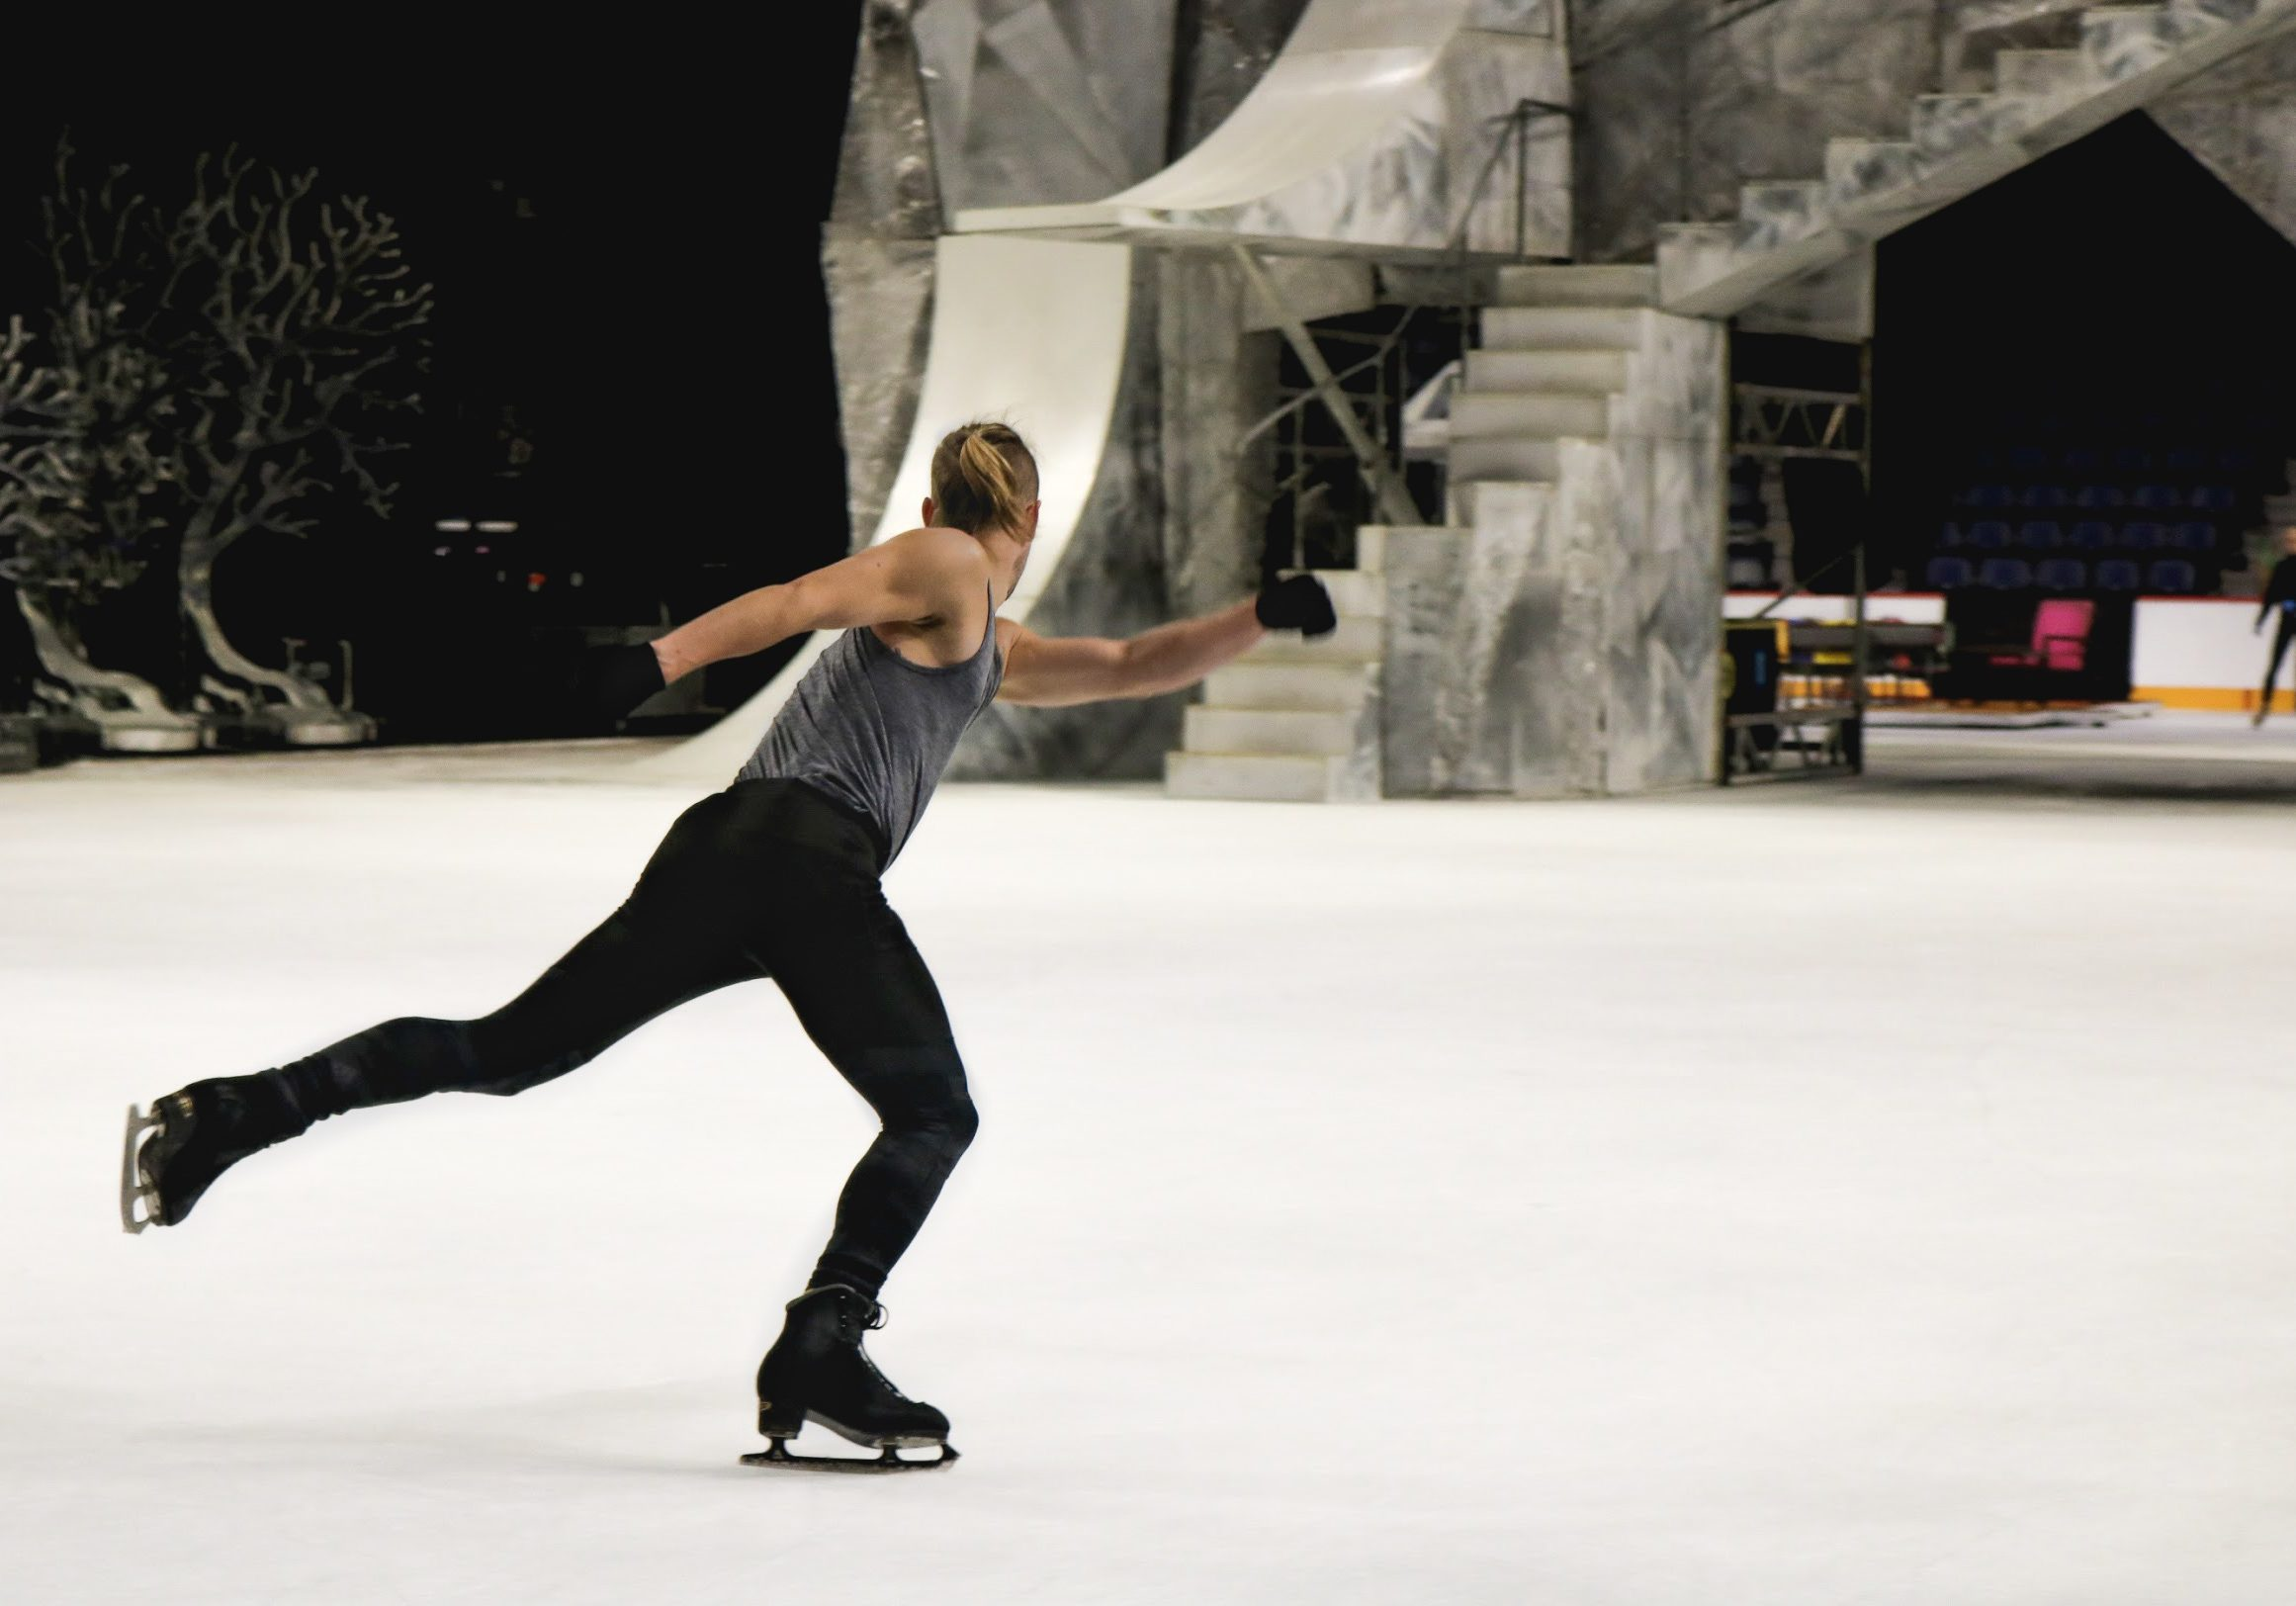 In this image: Shawn Sawyer practicing his skating.